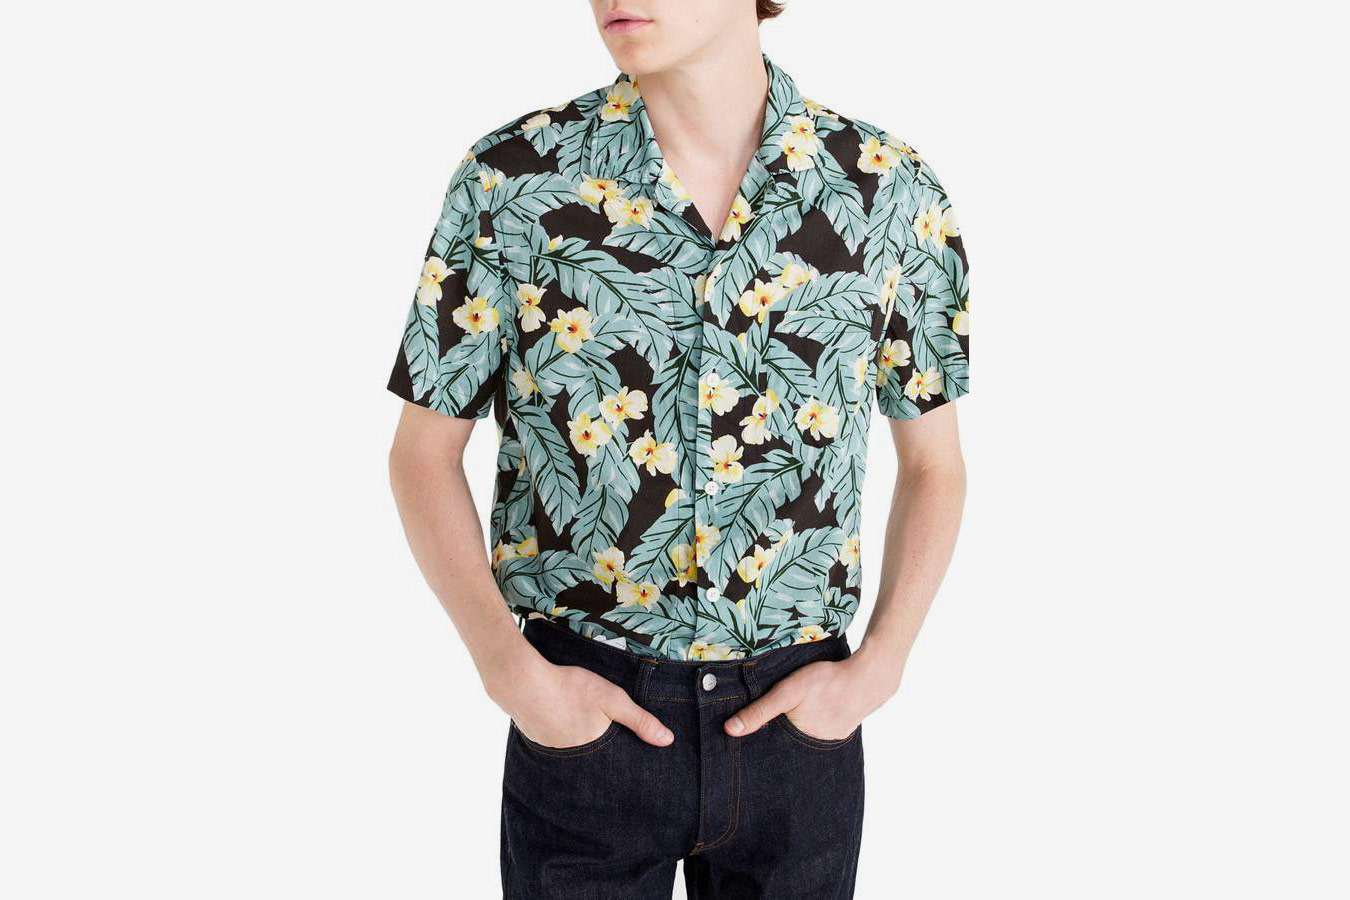 J.Crew Short Sleeve Jungle Print Slub Cotton Shirt